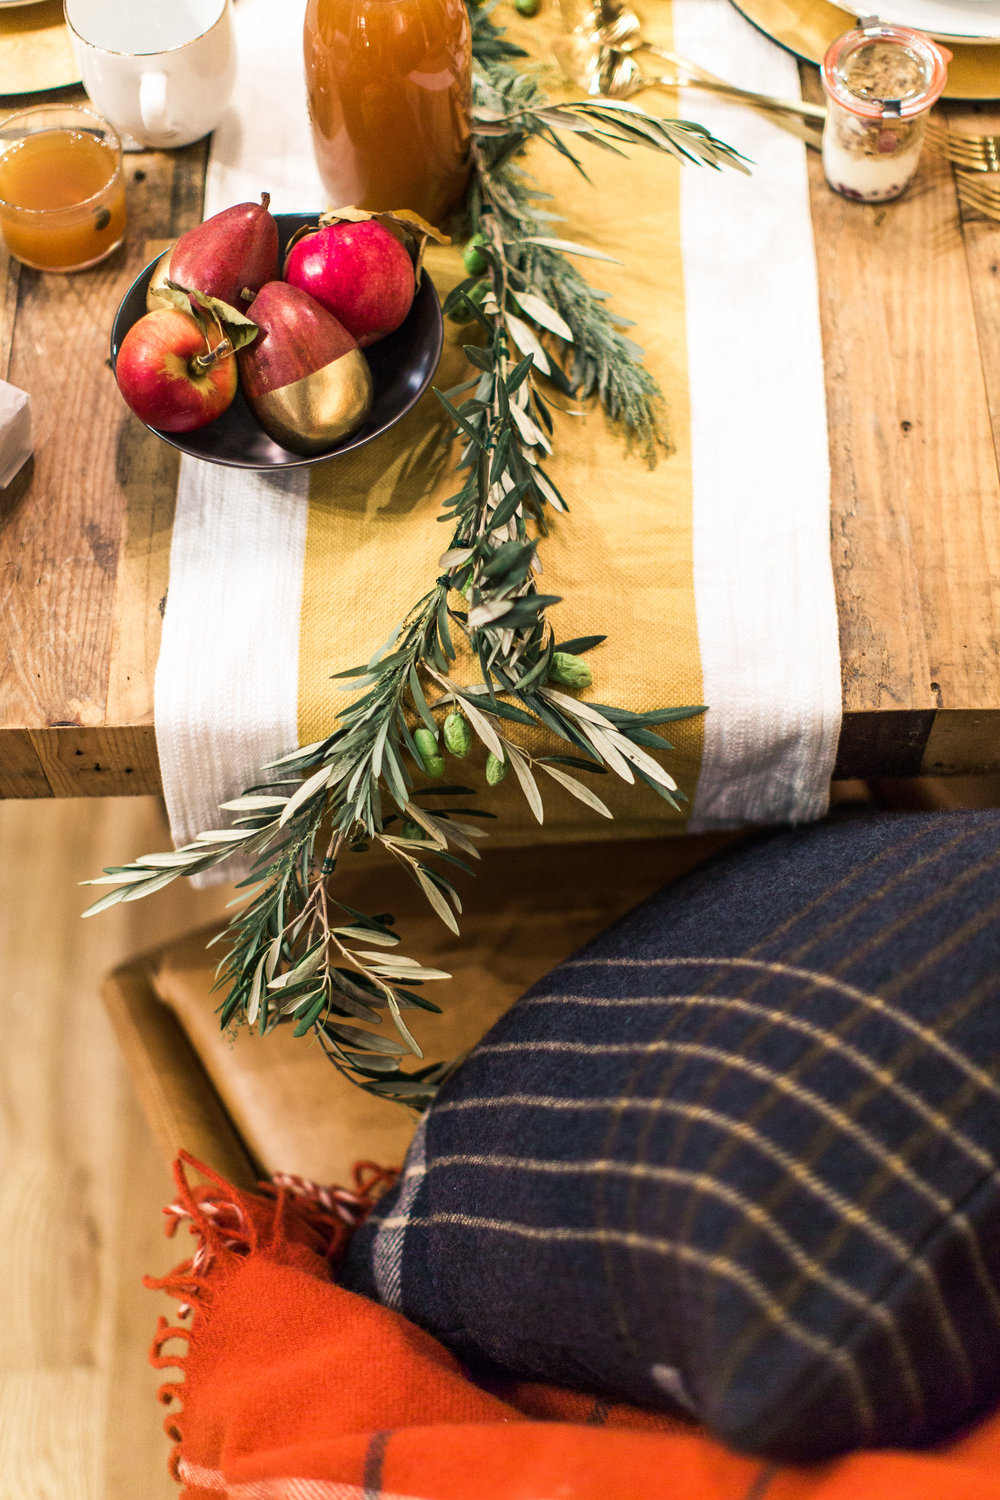 This simple olive branch and mixed greenery runner is simple, easy to do, and adds life to any table.